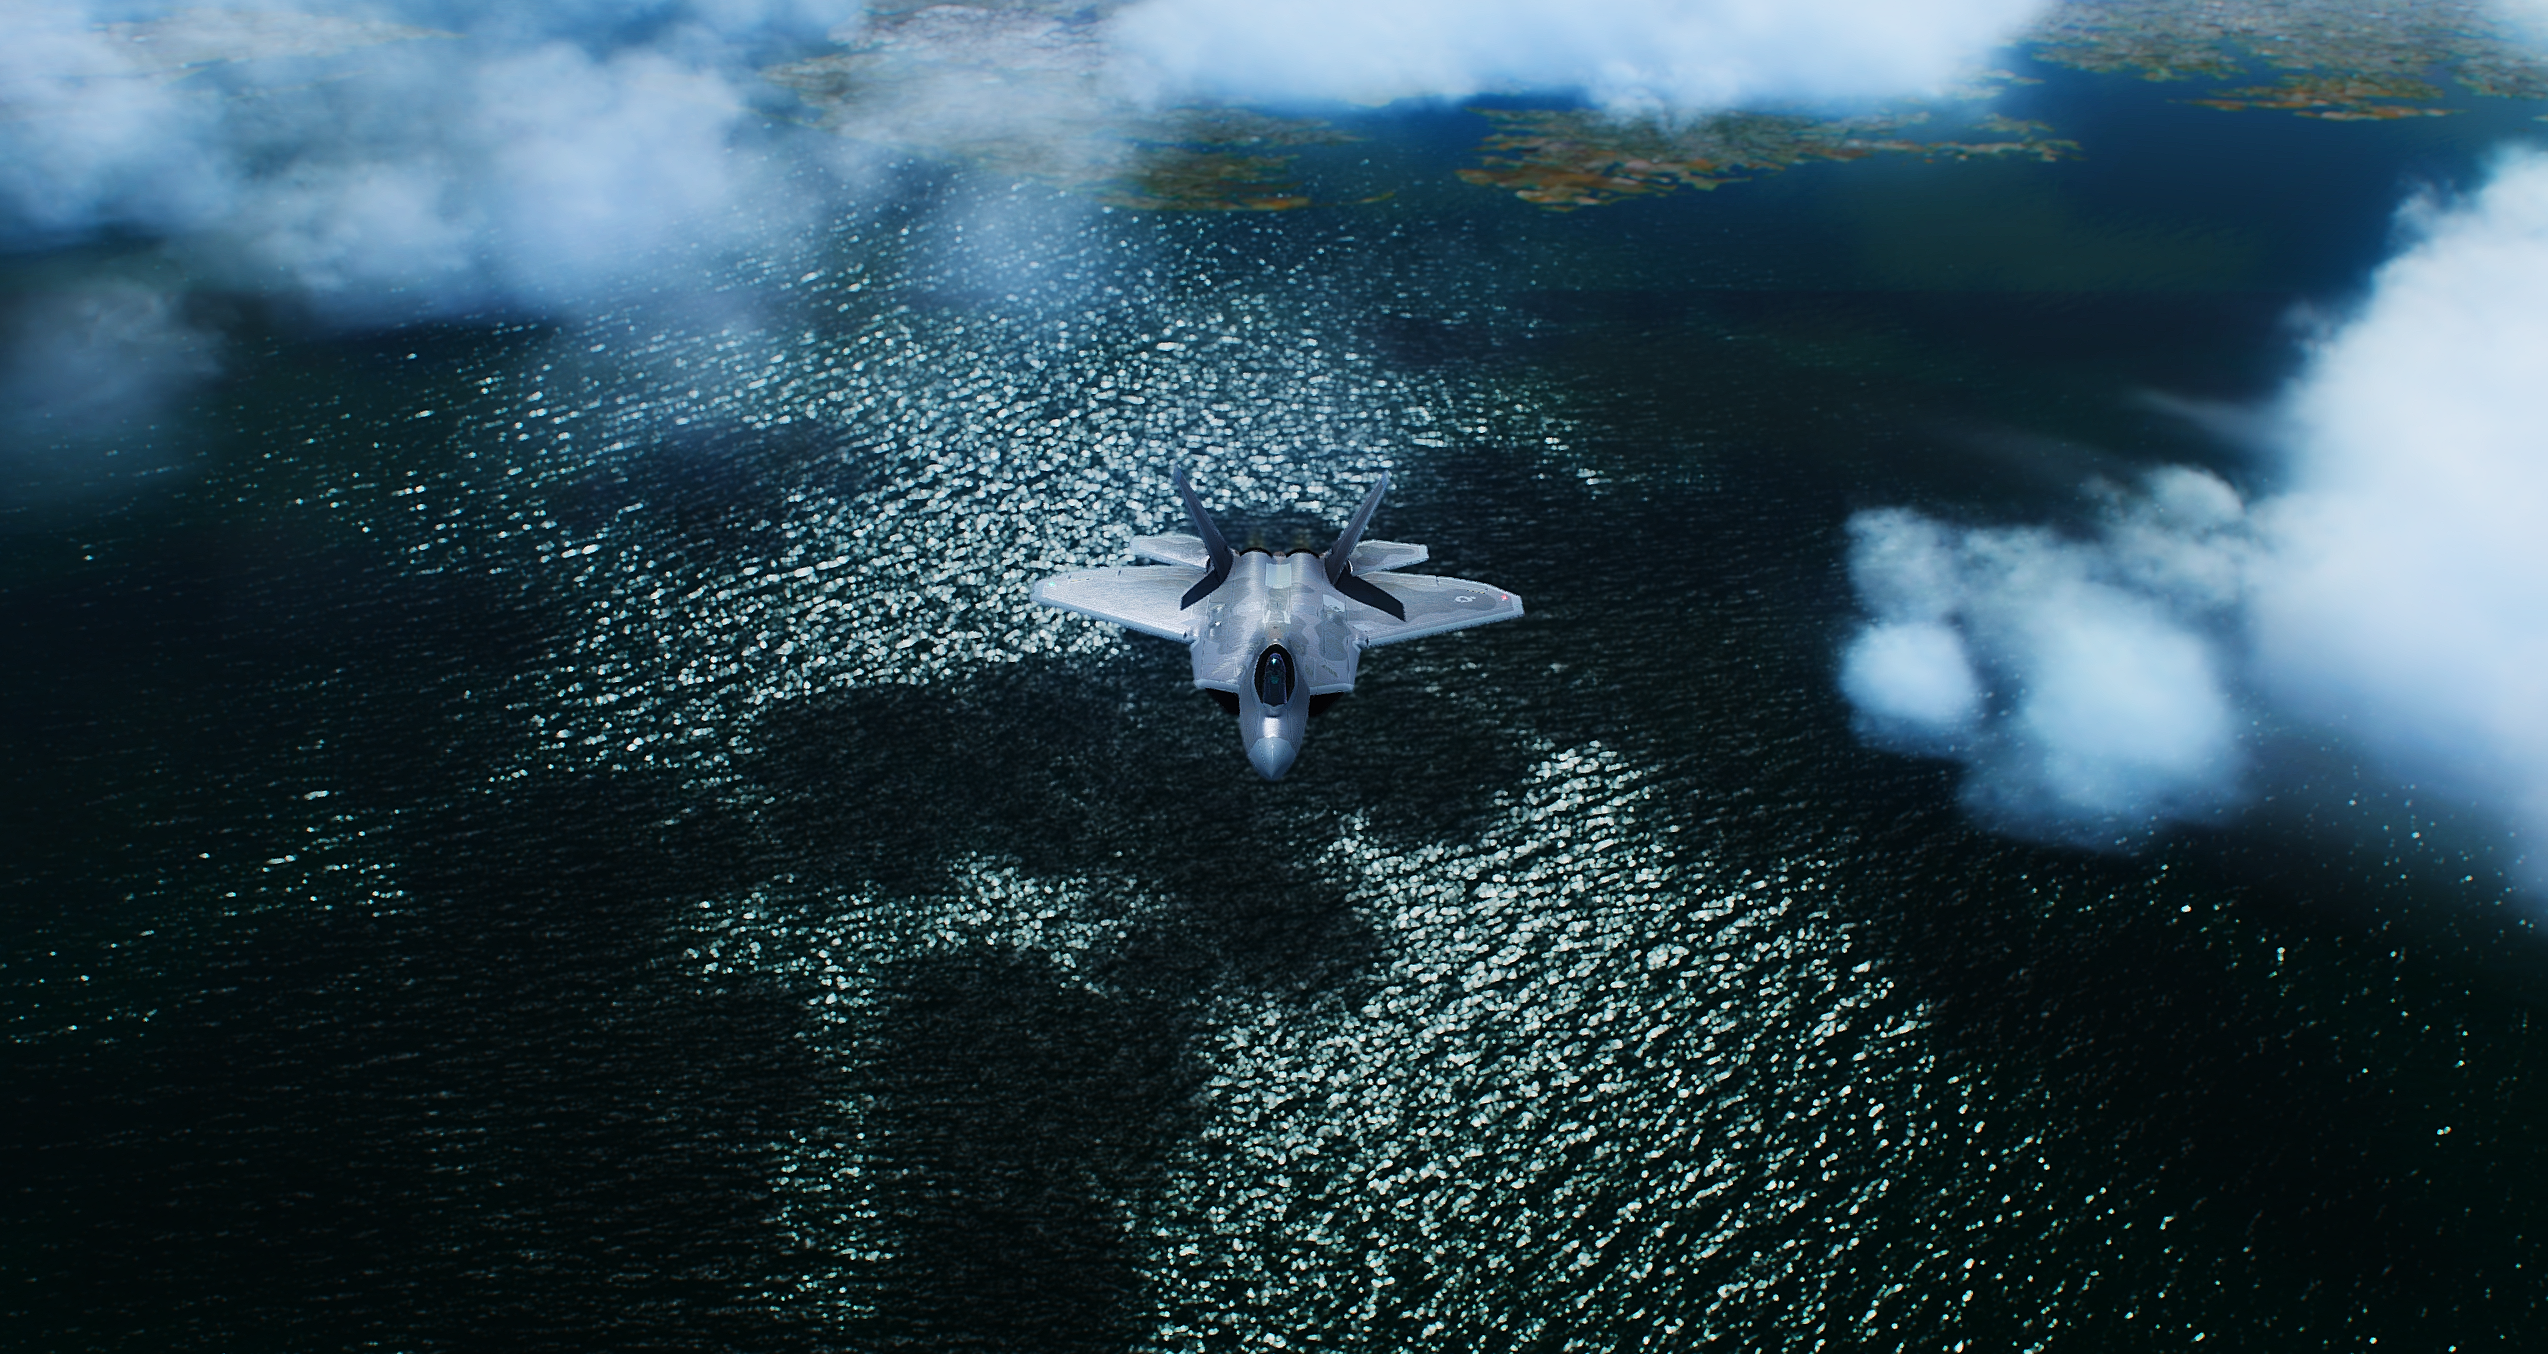 fsx%202015-07-05%2014-03-39-129.png?dl=0